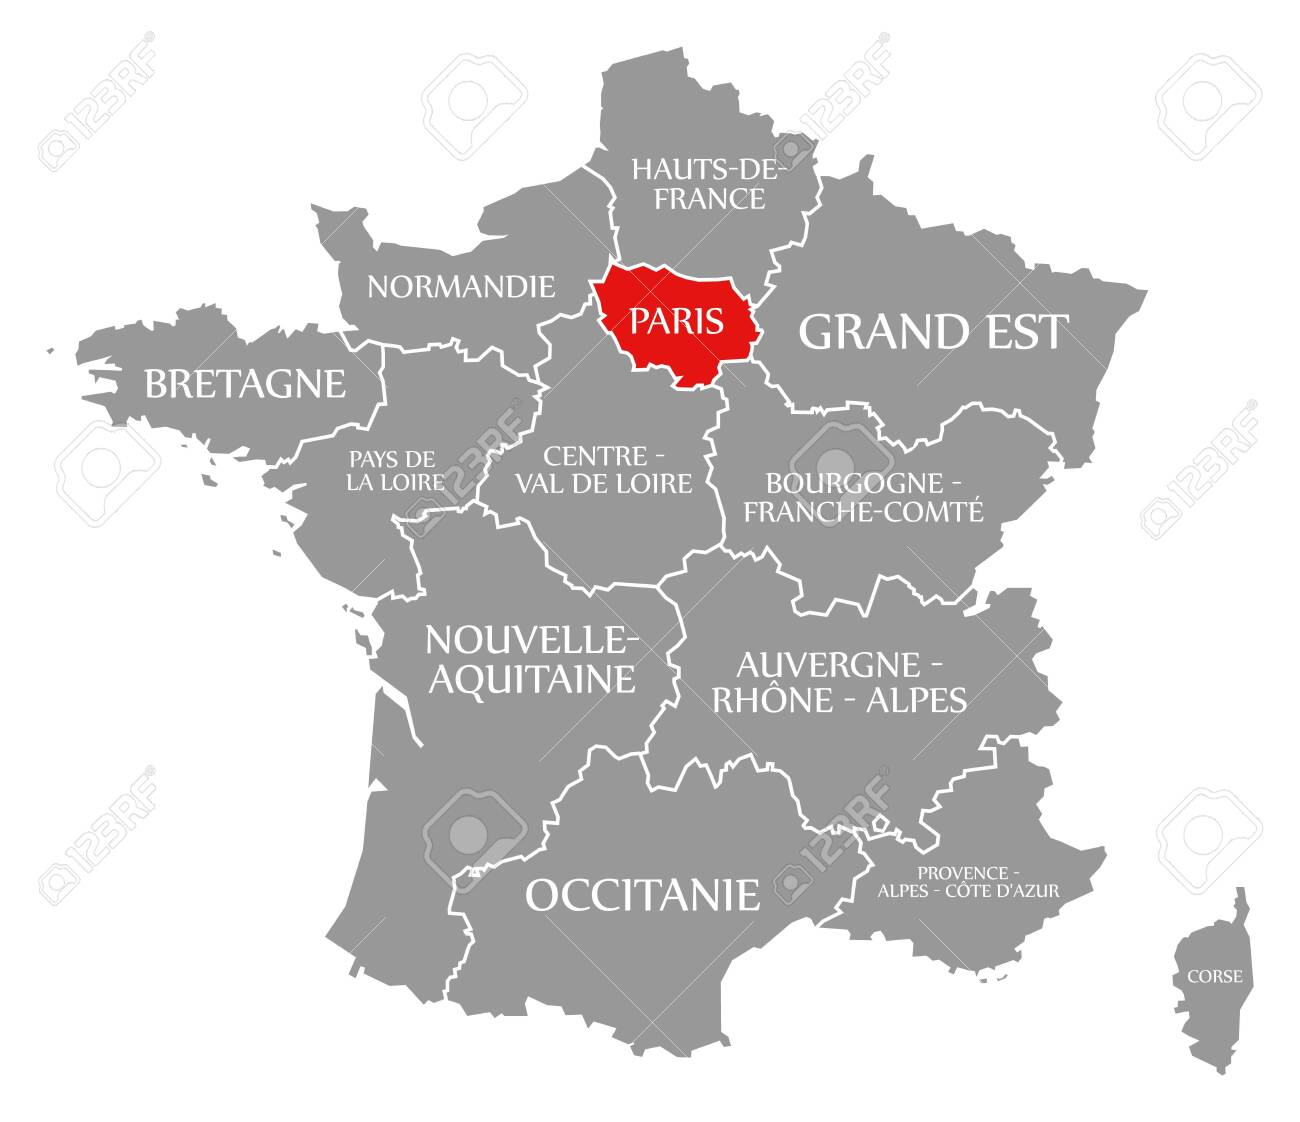 Map Of France With Paris.Paris Red Highlighted In Map Of France